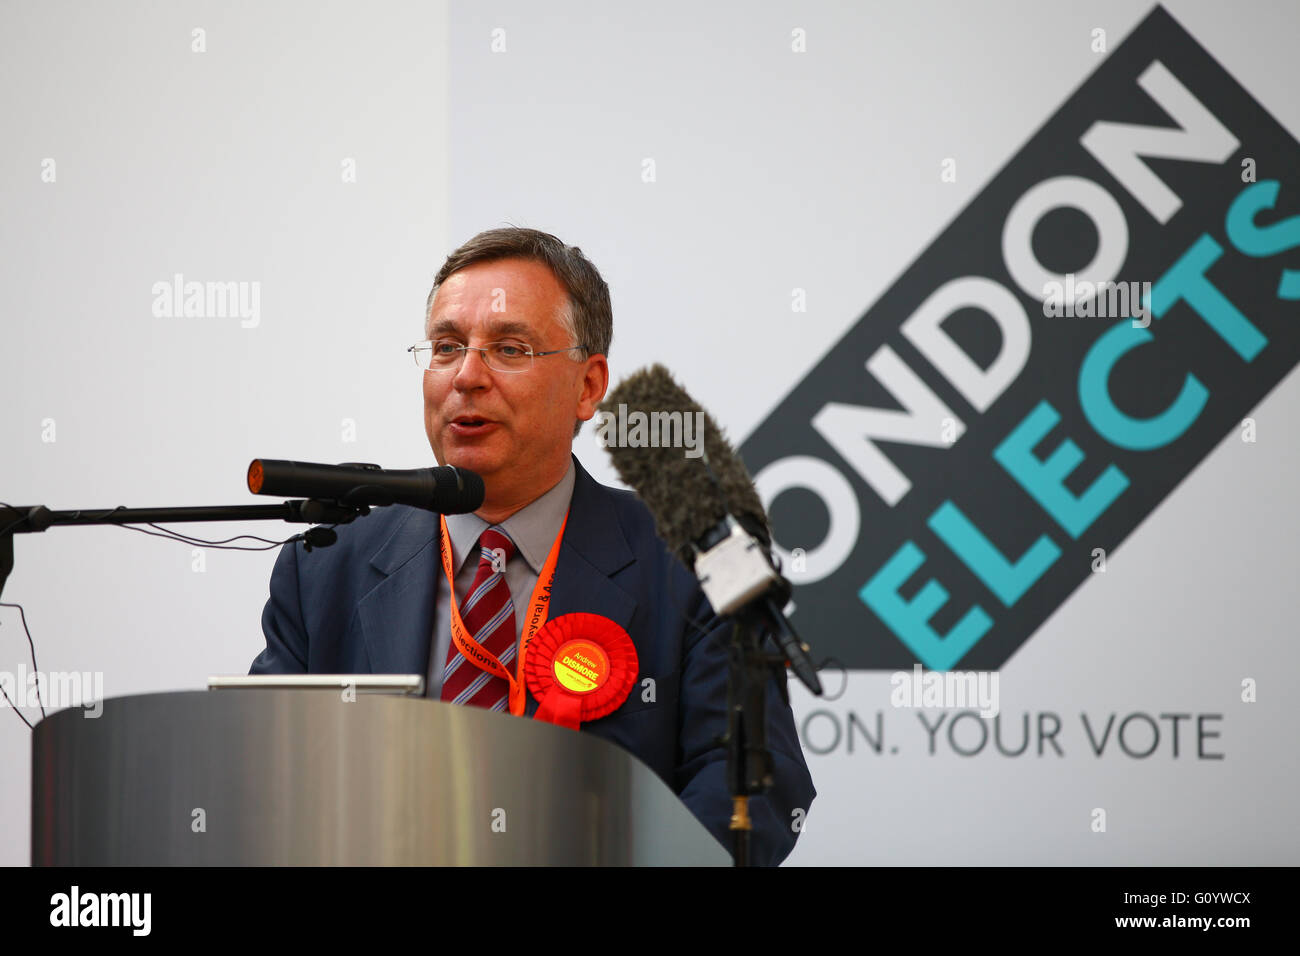 Alexandra Palace, London 6 May 2016 - Andrew Dismore holds onto Barnet and Camden seat at London elections. Mayor - Stock Image